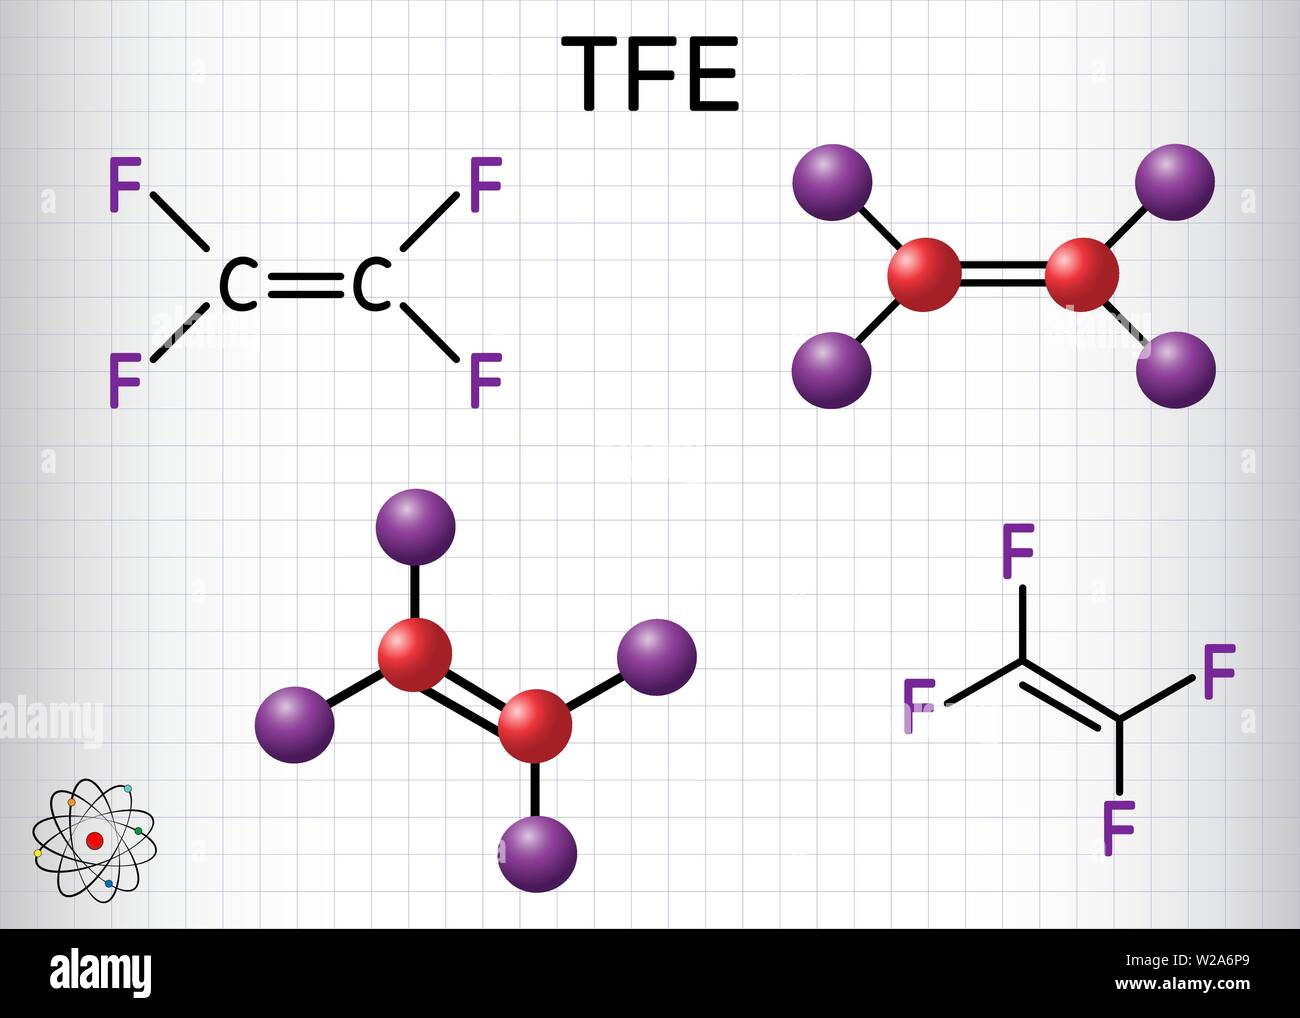 Tetrafluoroethylene or TFE molecule , is a monomer of Polytetrafluoroethylene or PTFE. It belongs to the family of fluorocarbons. Sheet of paper in a - Stock Vector